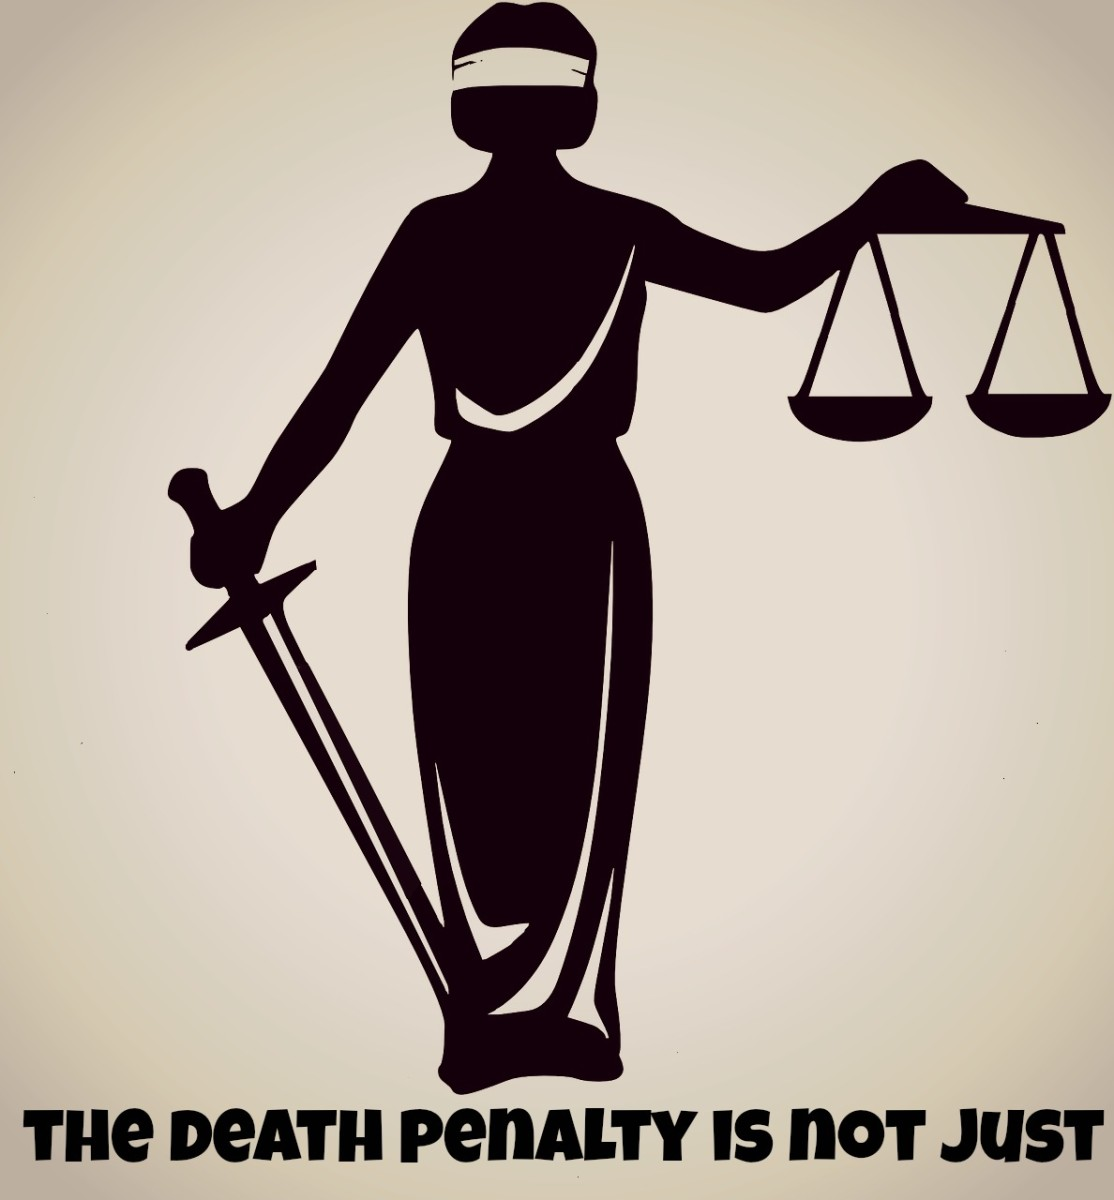 The death penalty isunfair, unjust, and immoral.